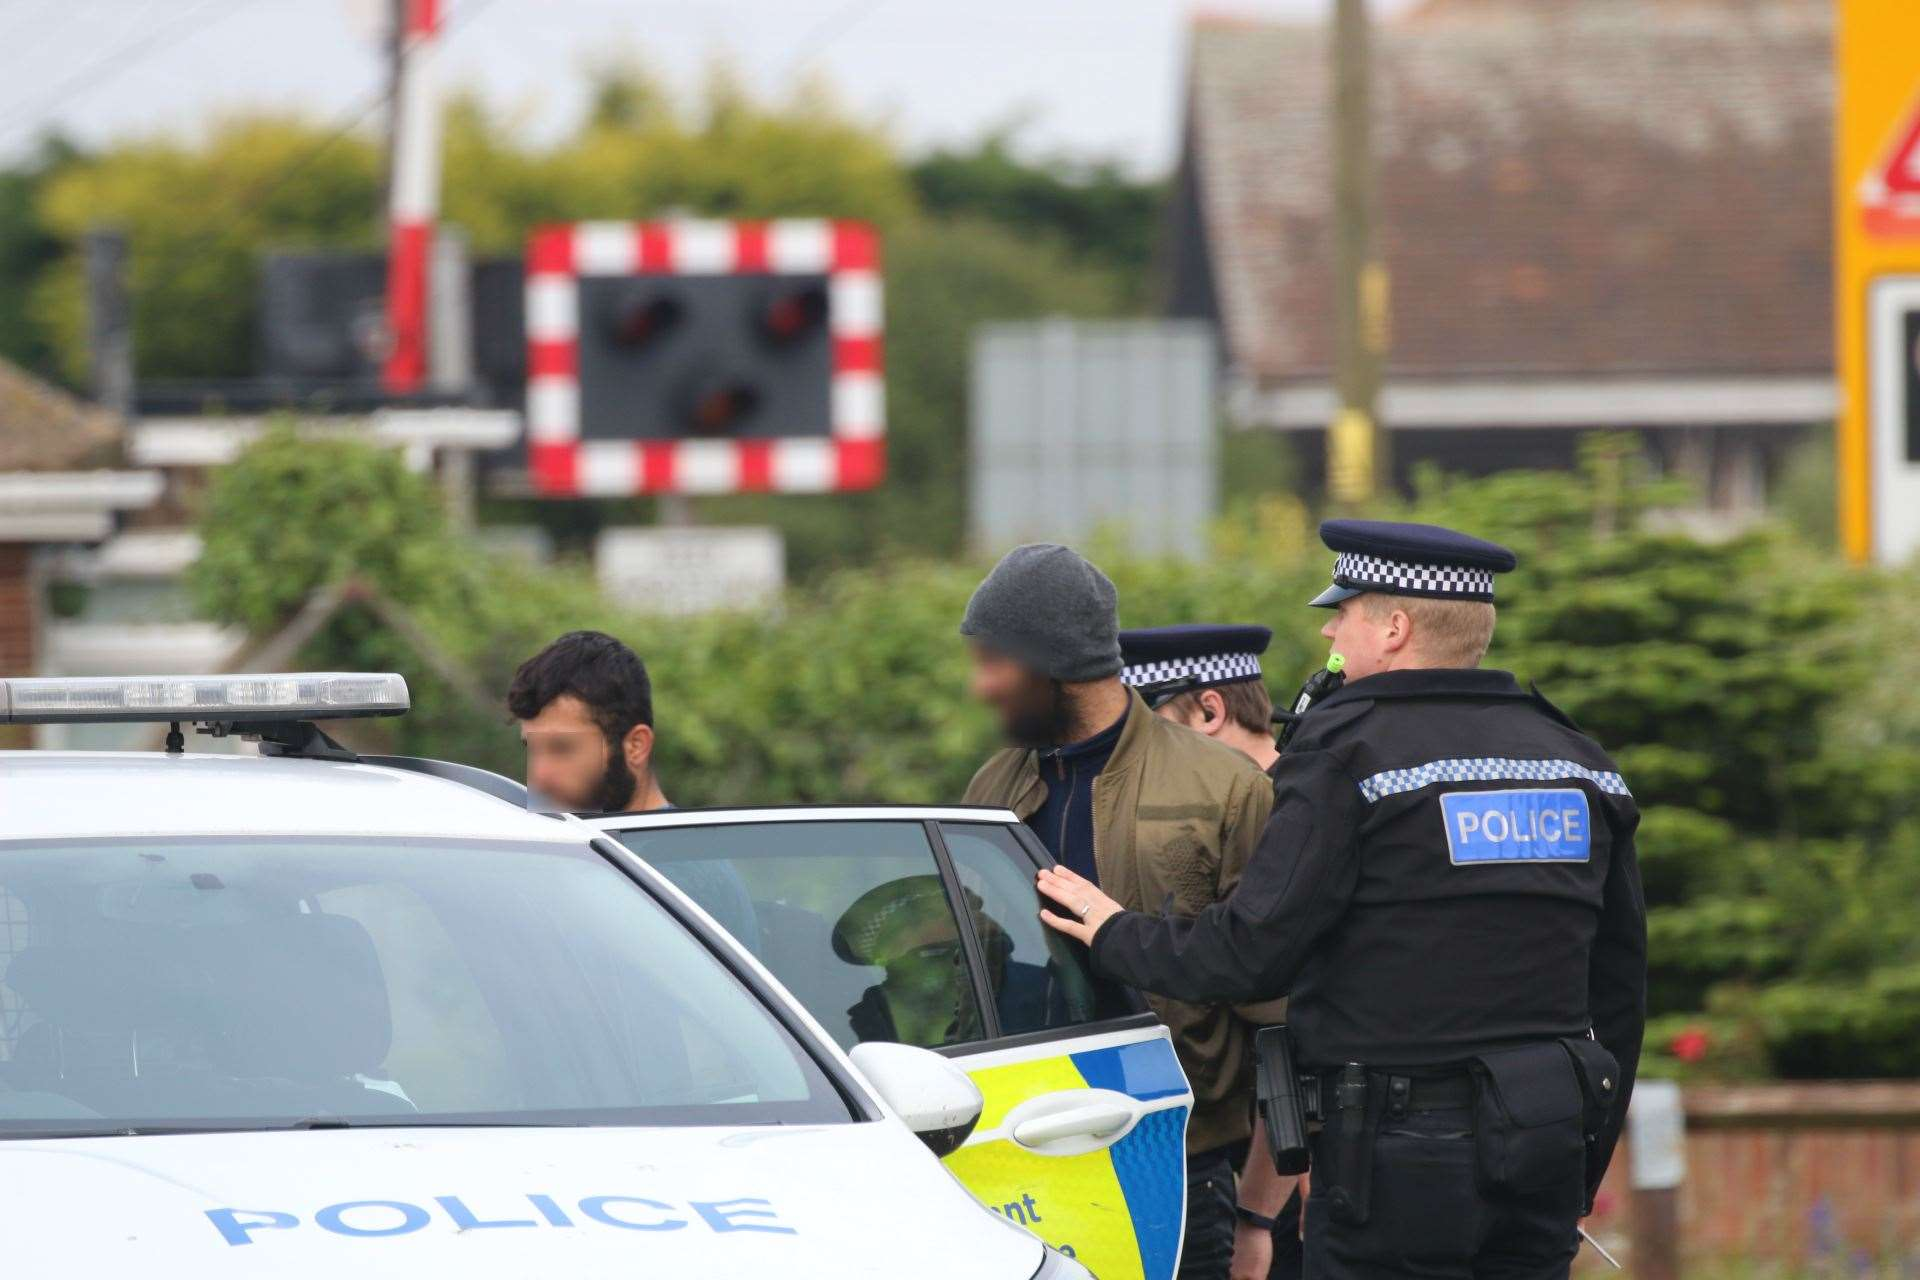 The suspected migrants were met by officers from Kent Police. Picture: Susan Pilcher